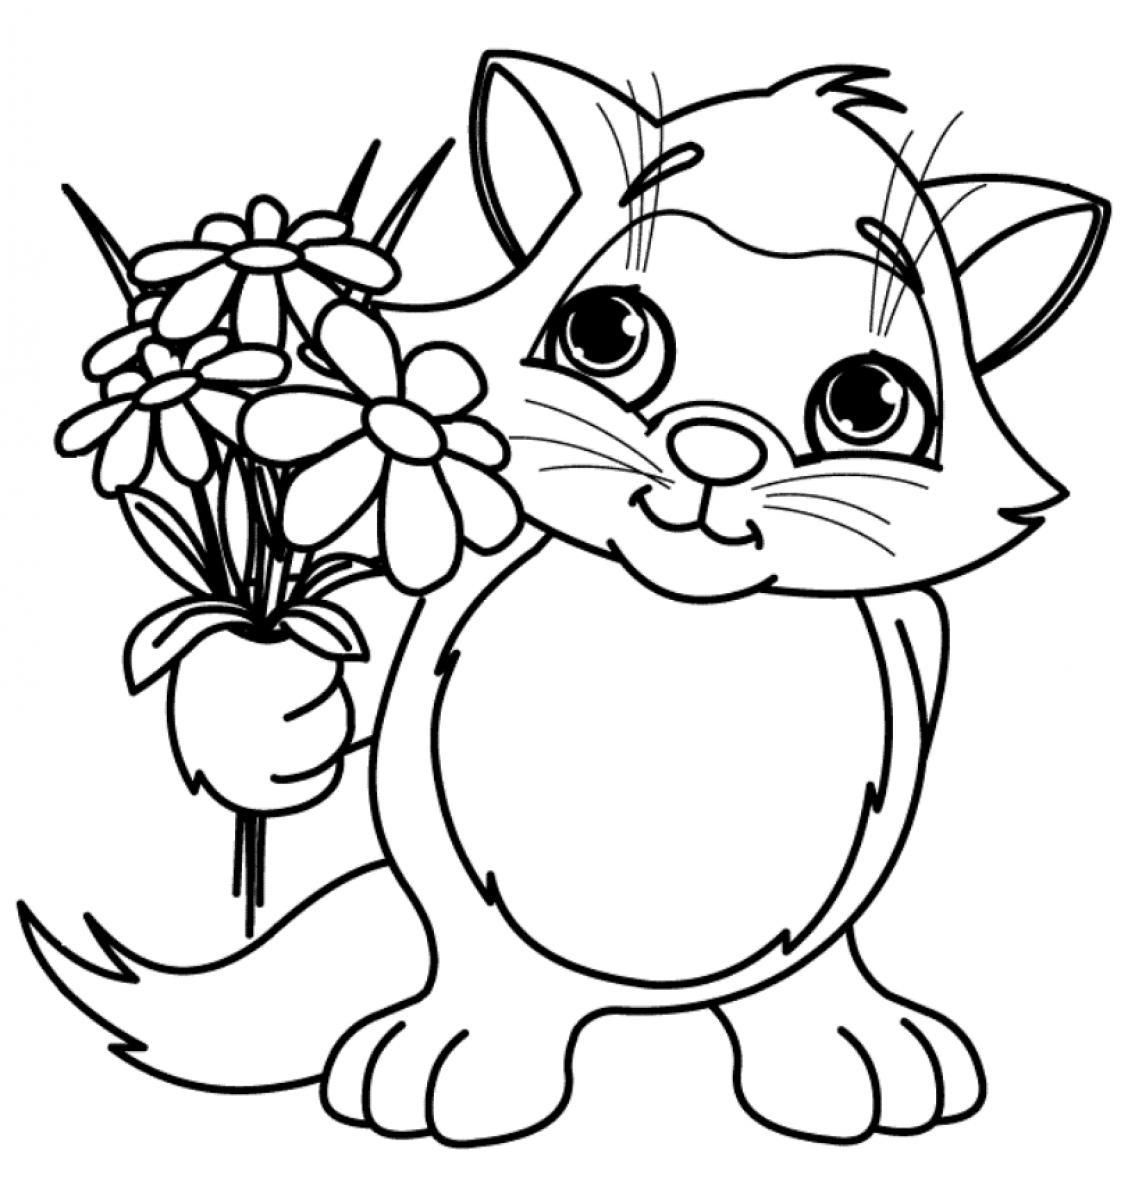 Spring Flowers Coloring Pages Free Printable Spring Flower Kid